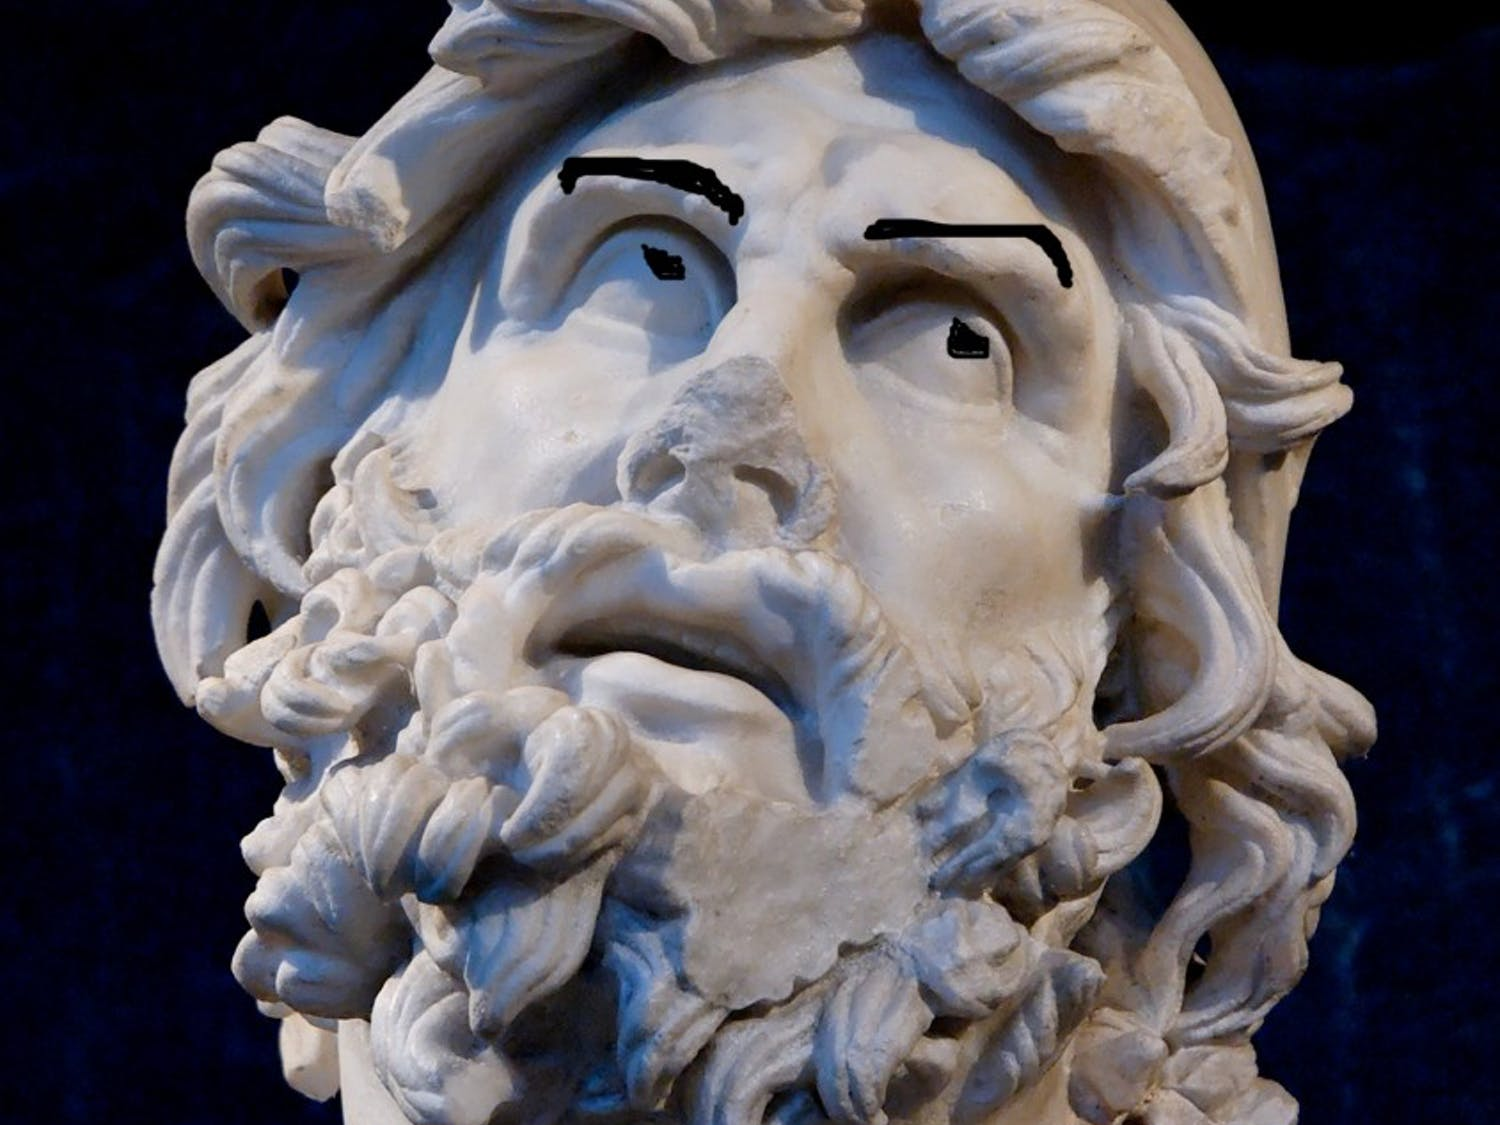 Odysseus pictured rolling his eyes while speaking of his home country.